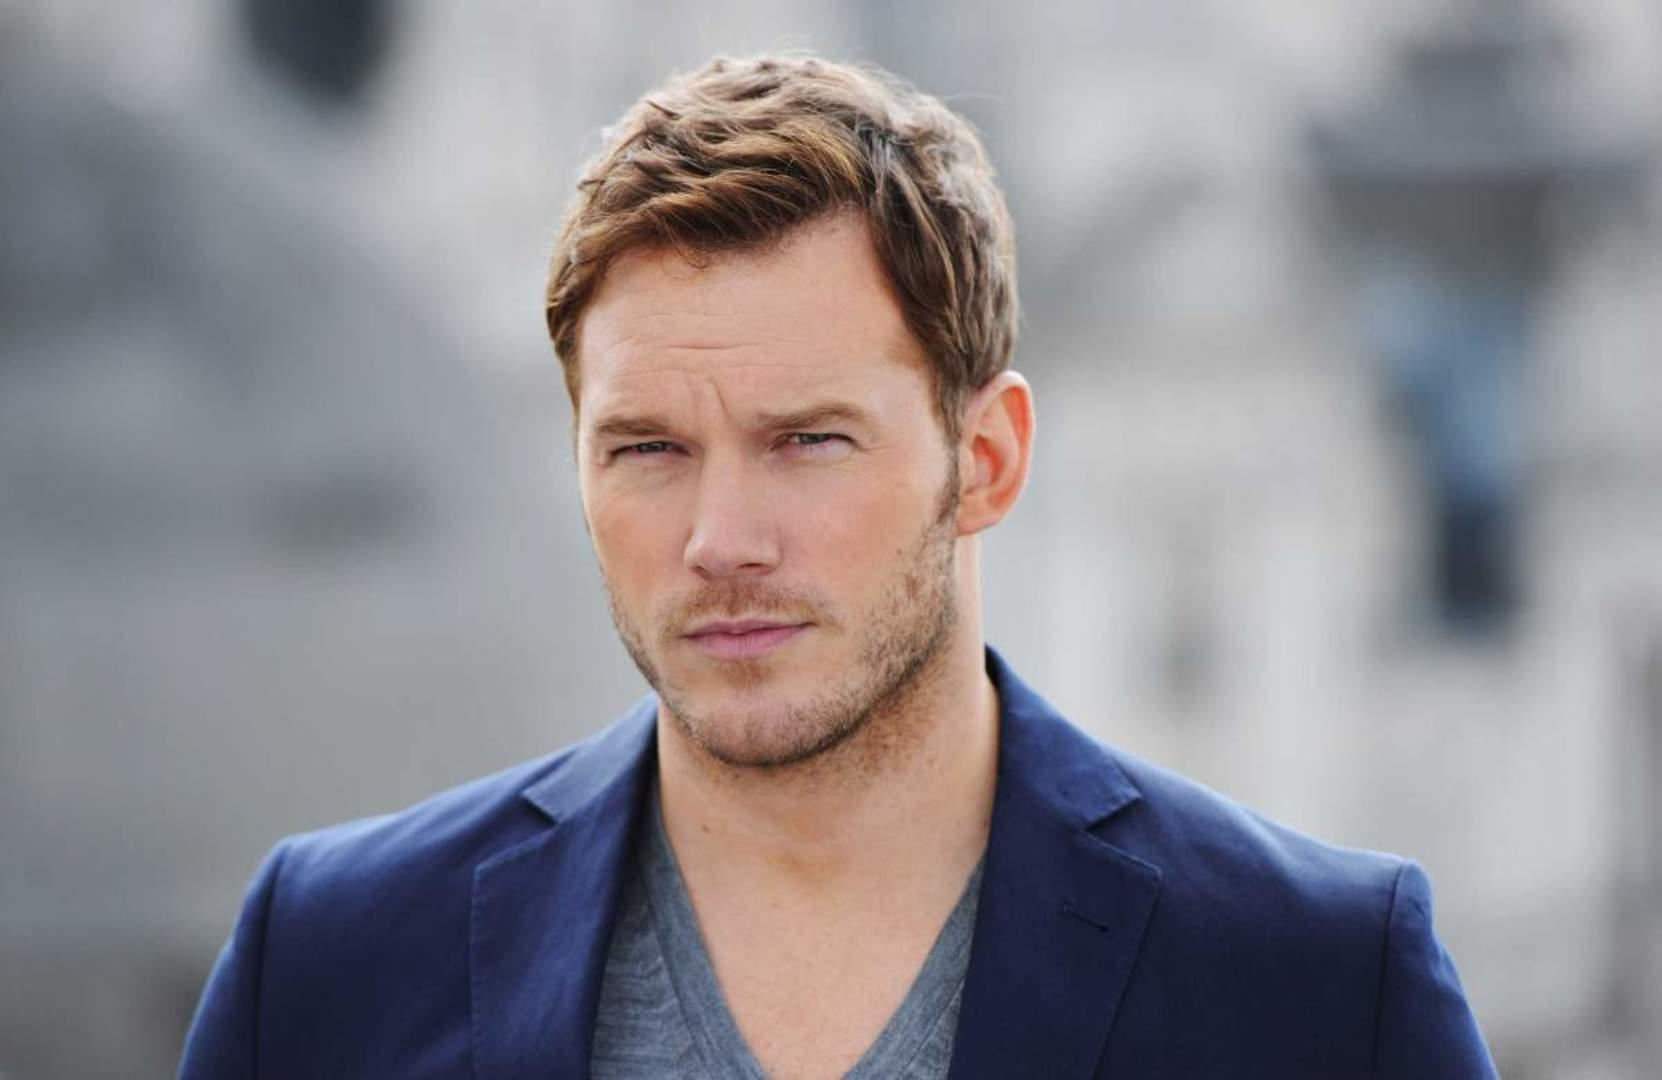 Chris Pratt Says He Doesn't Like Taking Pictures With FANS!?